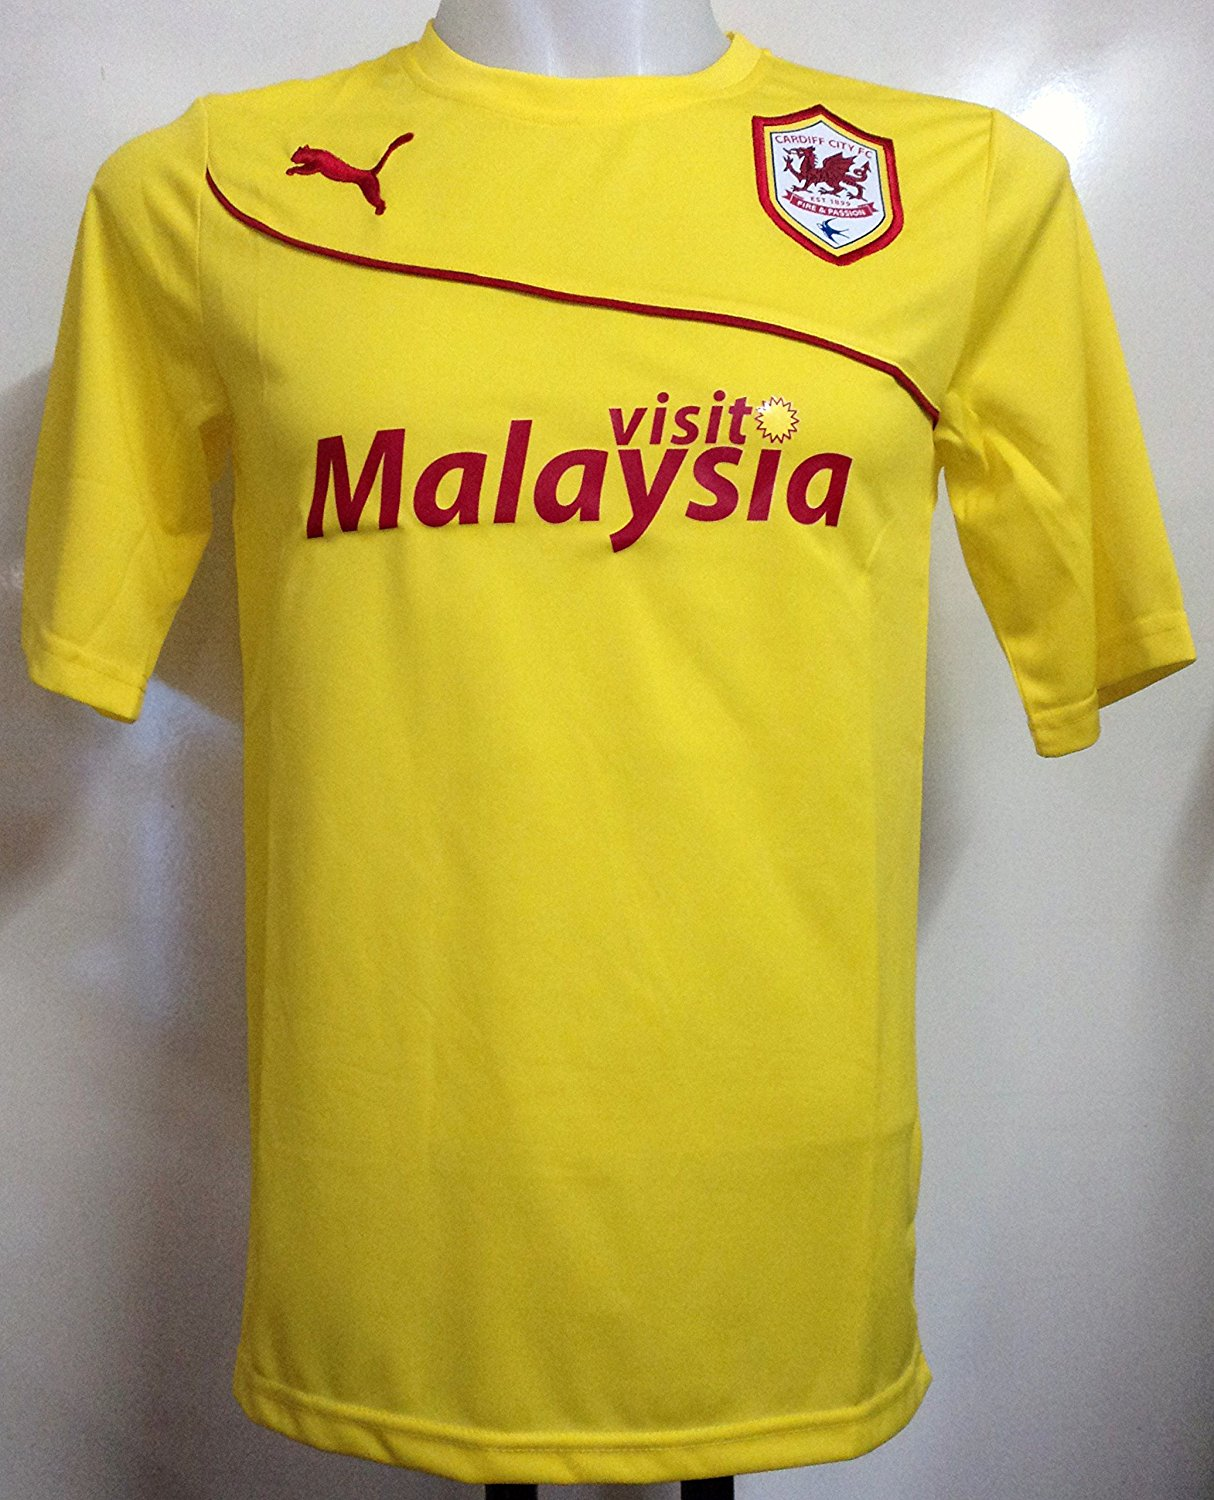 2013-14 Cardiff City Away Football Shirt